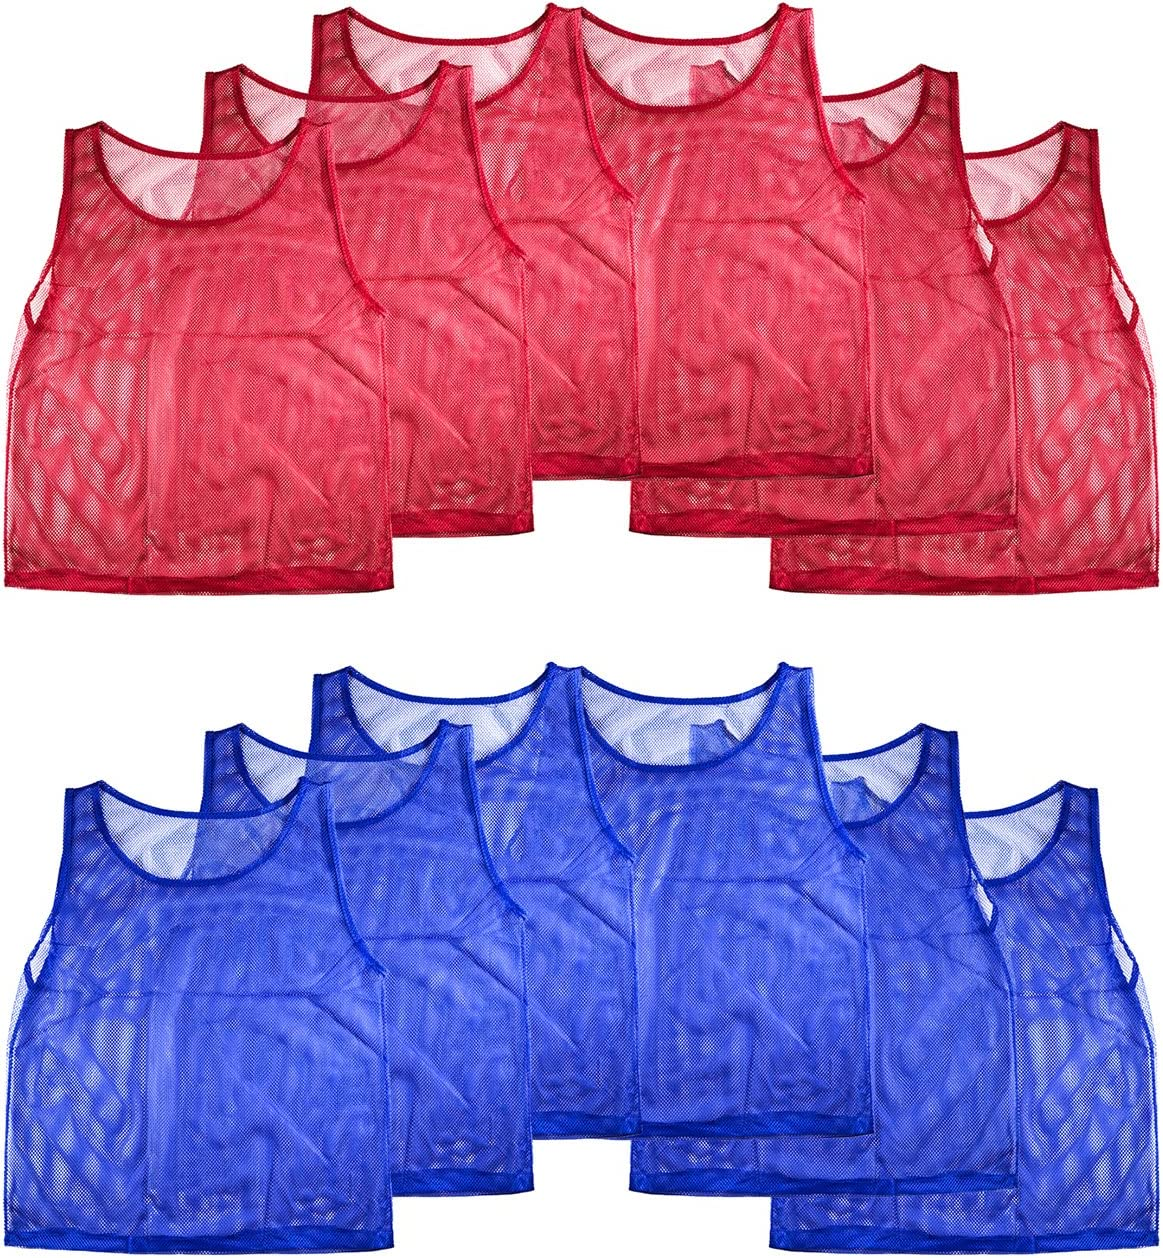 Super Z Outlet Nylon Mesh Scrimmage Team Practice Vests Pinnies Jerseys for Children Youth Sports Basketball, Soccer, Football(12 Jerseys)